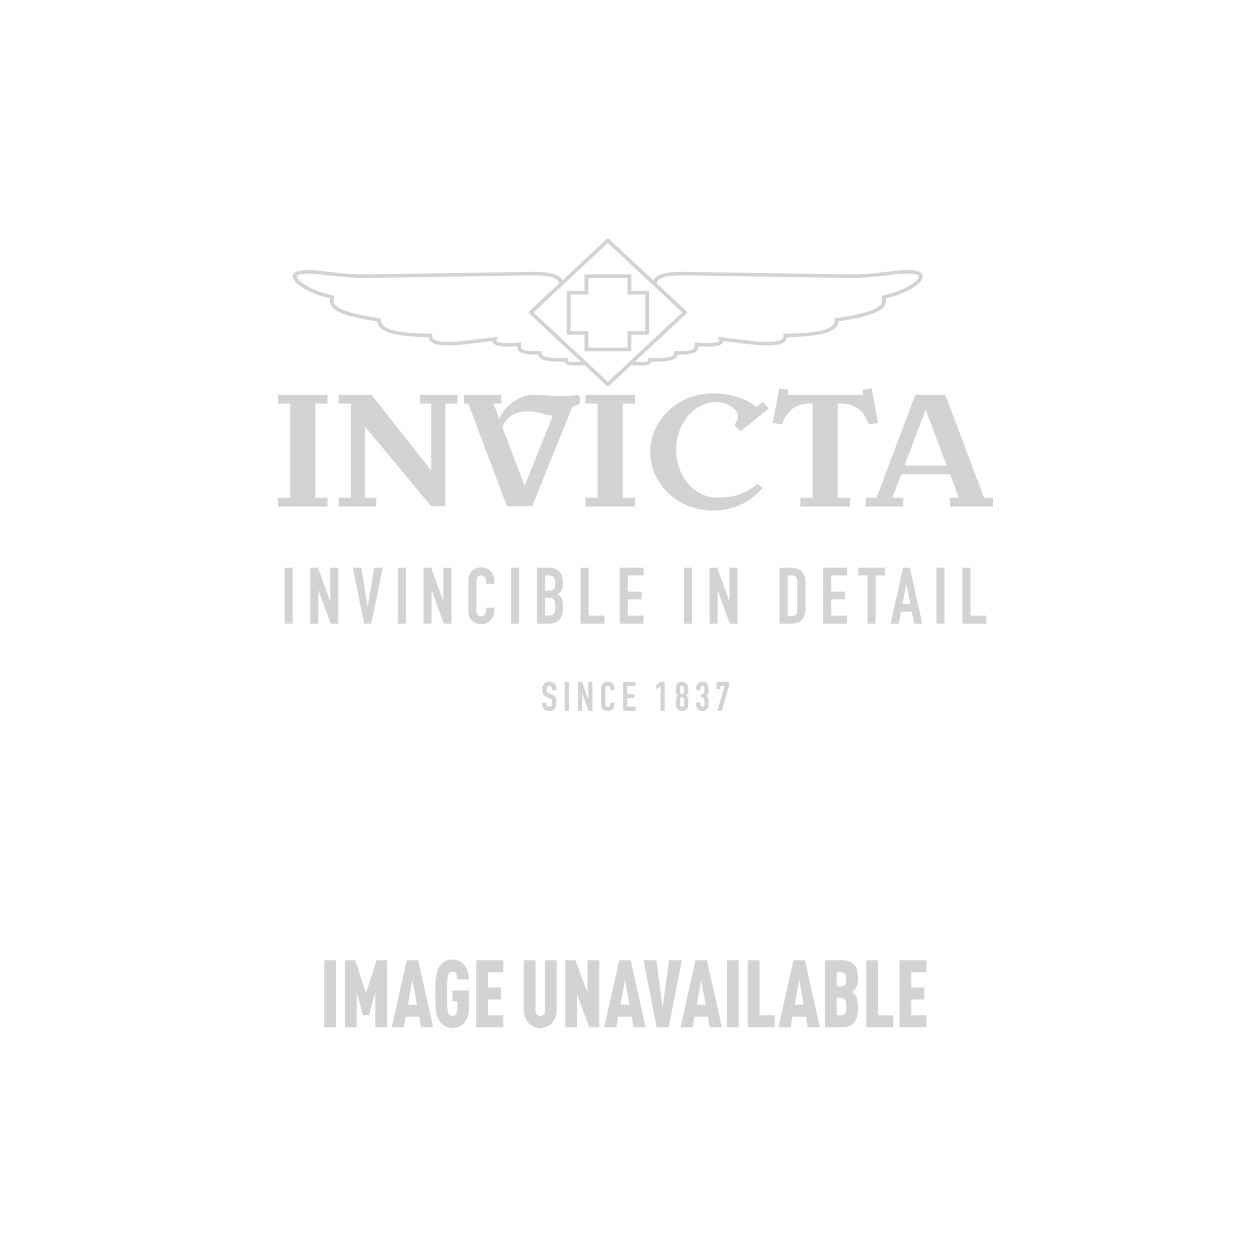 Invicta JT Automatic Watch - Gunmetal, Stainless Steel case with Steel, Gunmetal tone Stainless Steel band - Model 15885